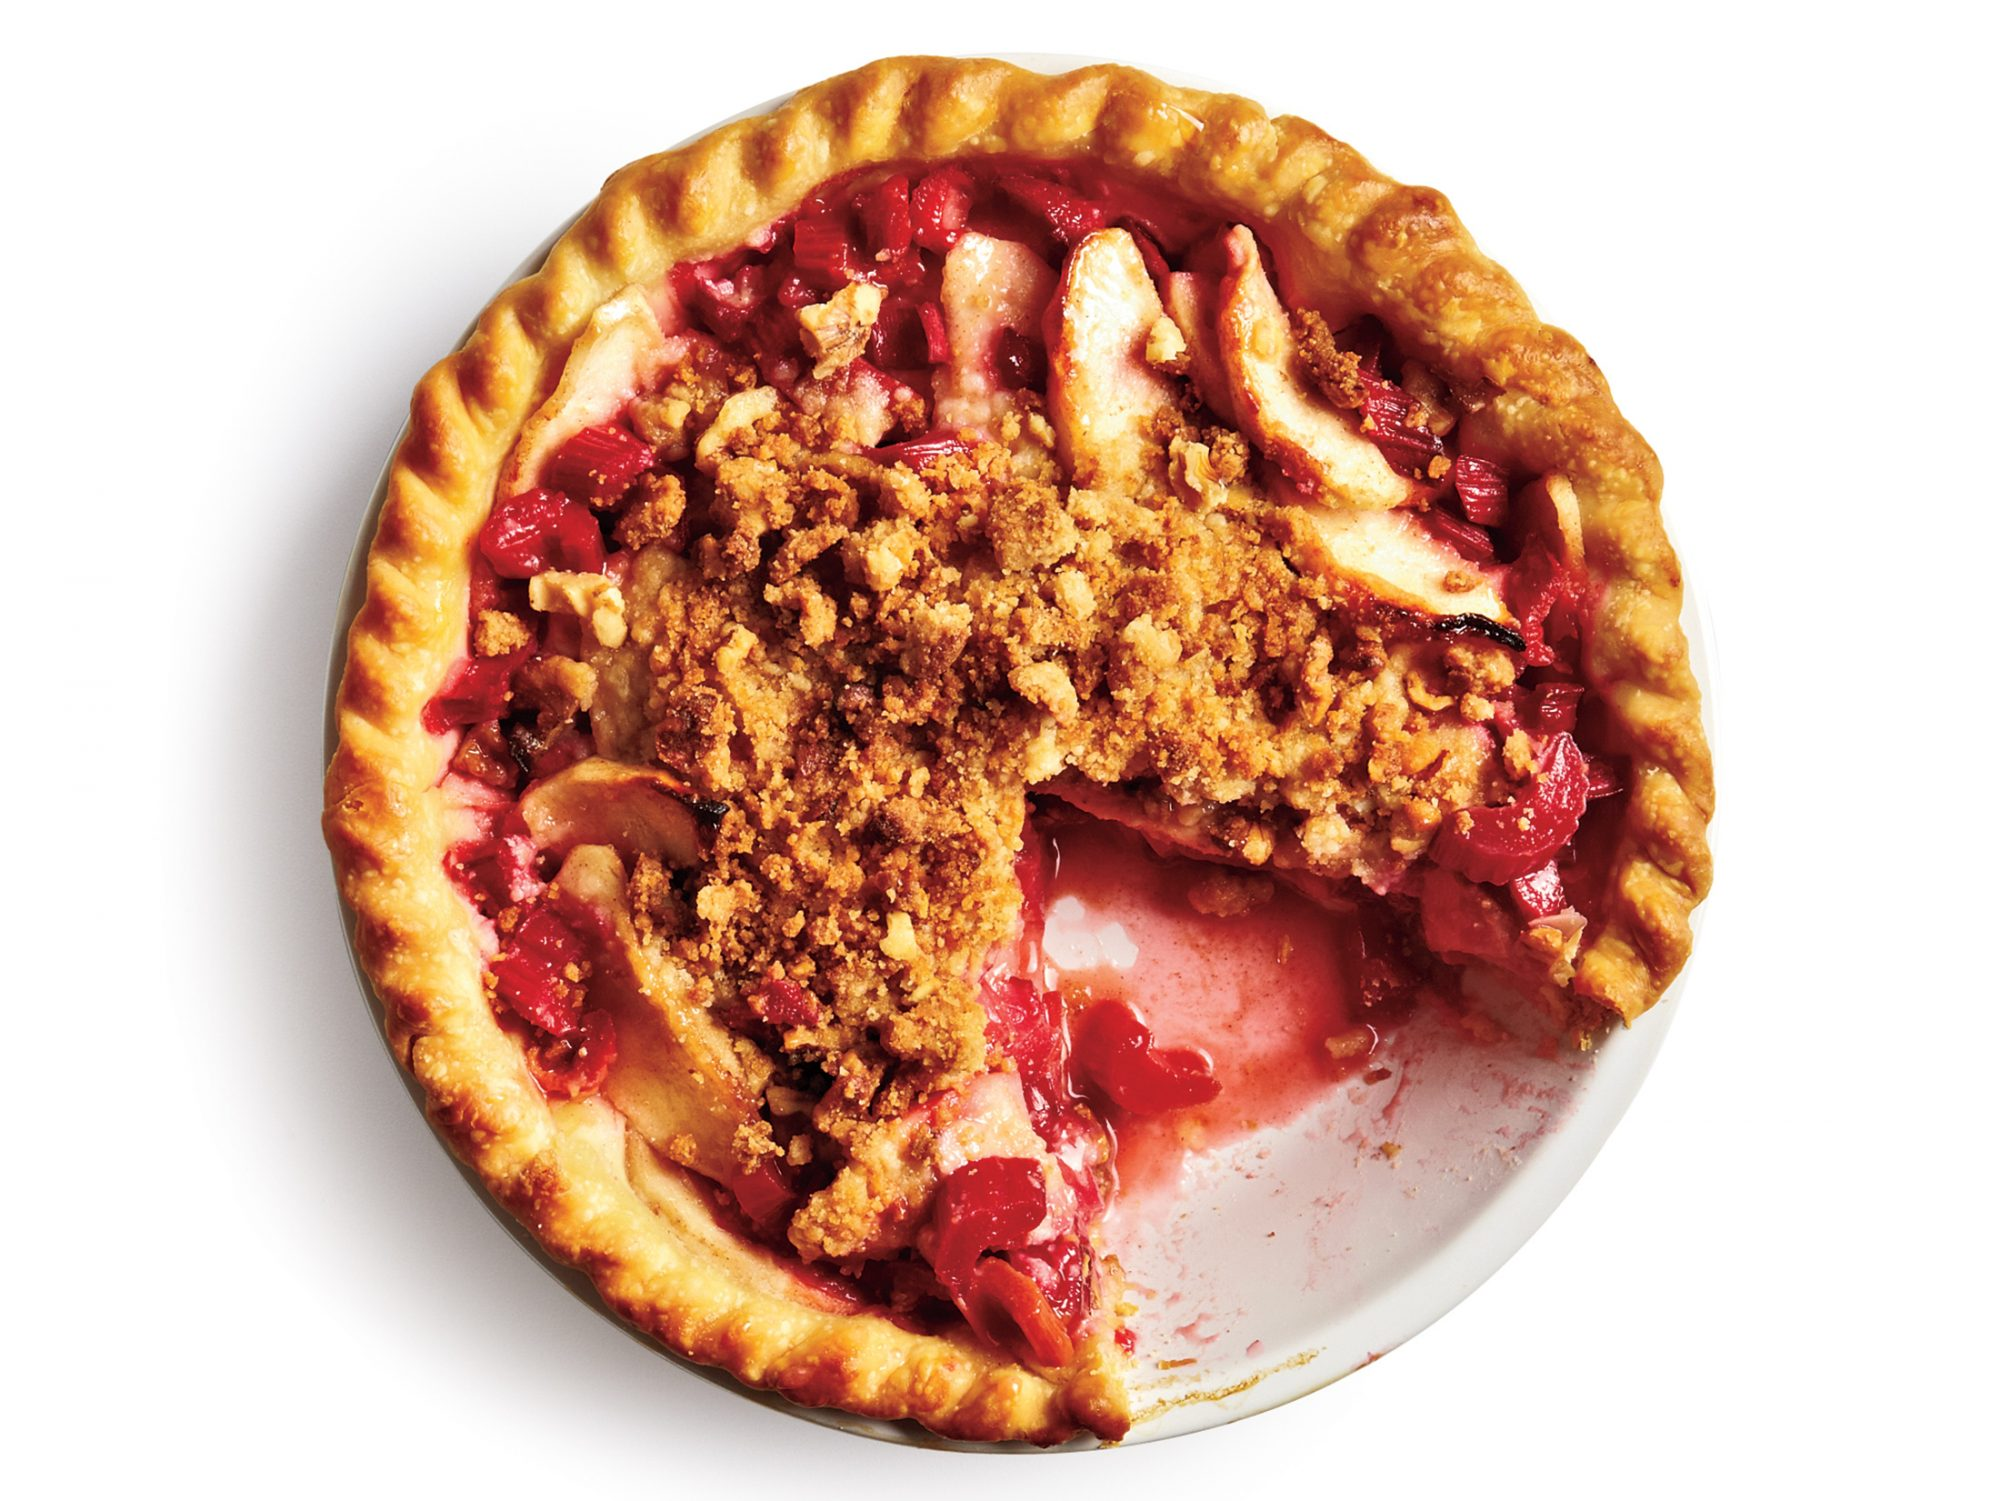 Rhubarb-Apple Pie